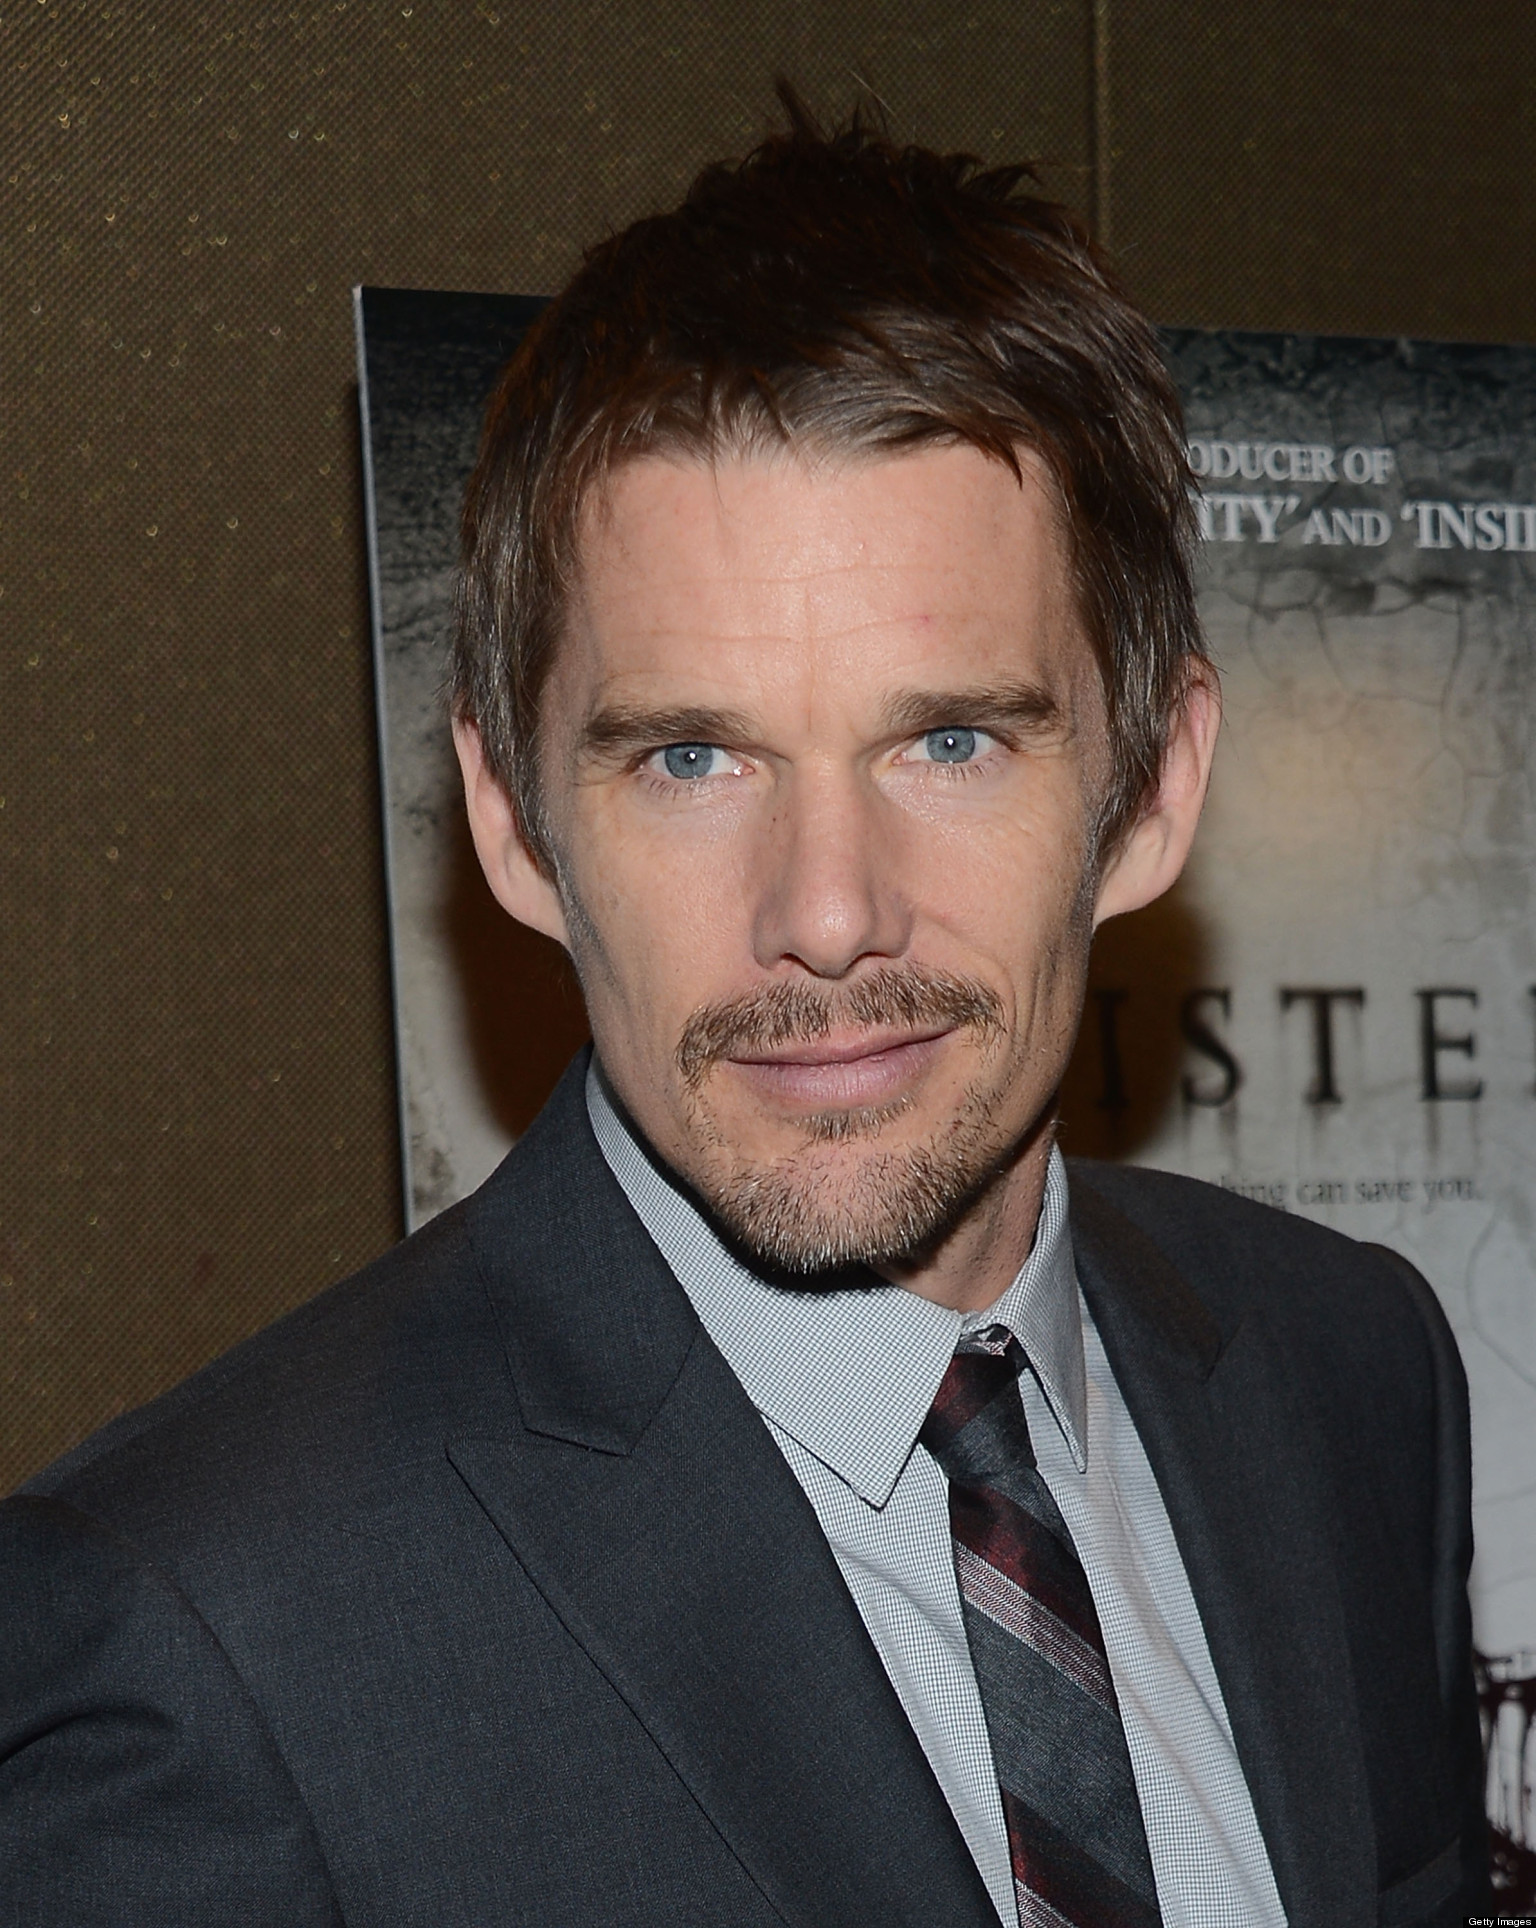 Ethan Hawke, 'Sinister' Star, On The Disappointment Of ...